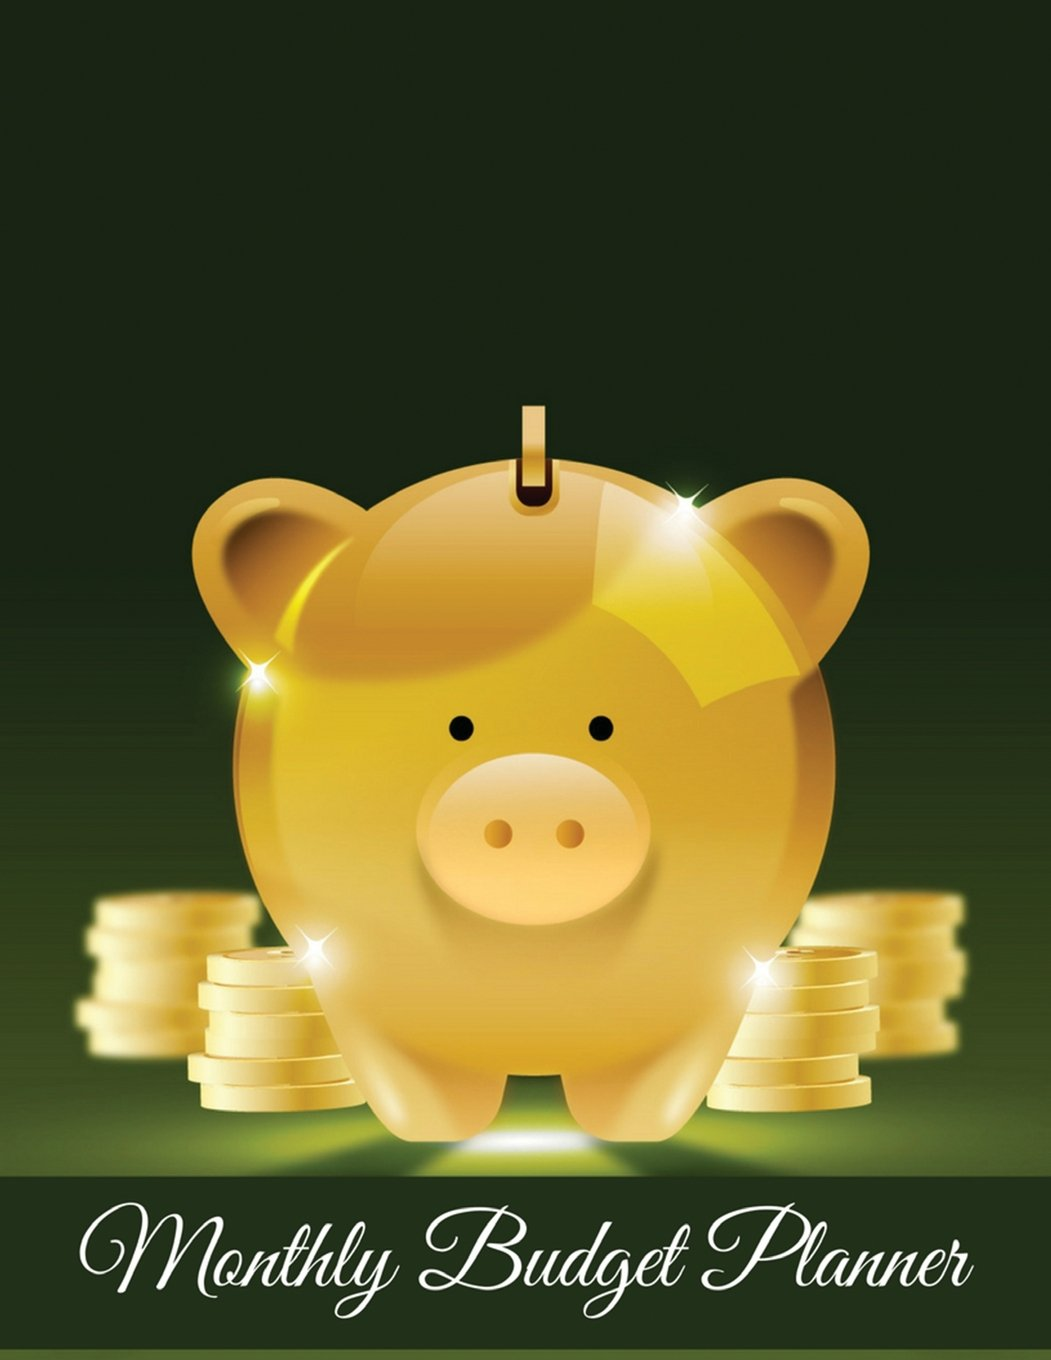 Read Online Monthly Budget Planner: Gold Piggy Bank with Coin Design Budget Planner Book With Calendar 2018-2019 Income List, Monthly Expense Categories and ... Budget Planner and Bill Tracker (Volume 4) pdf epub